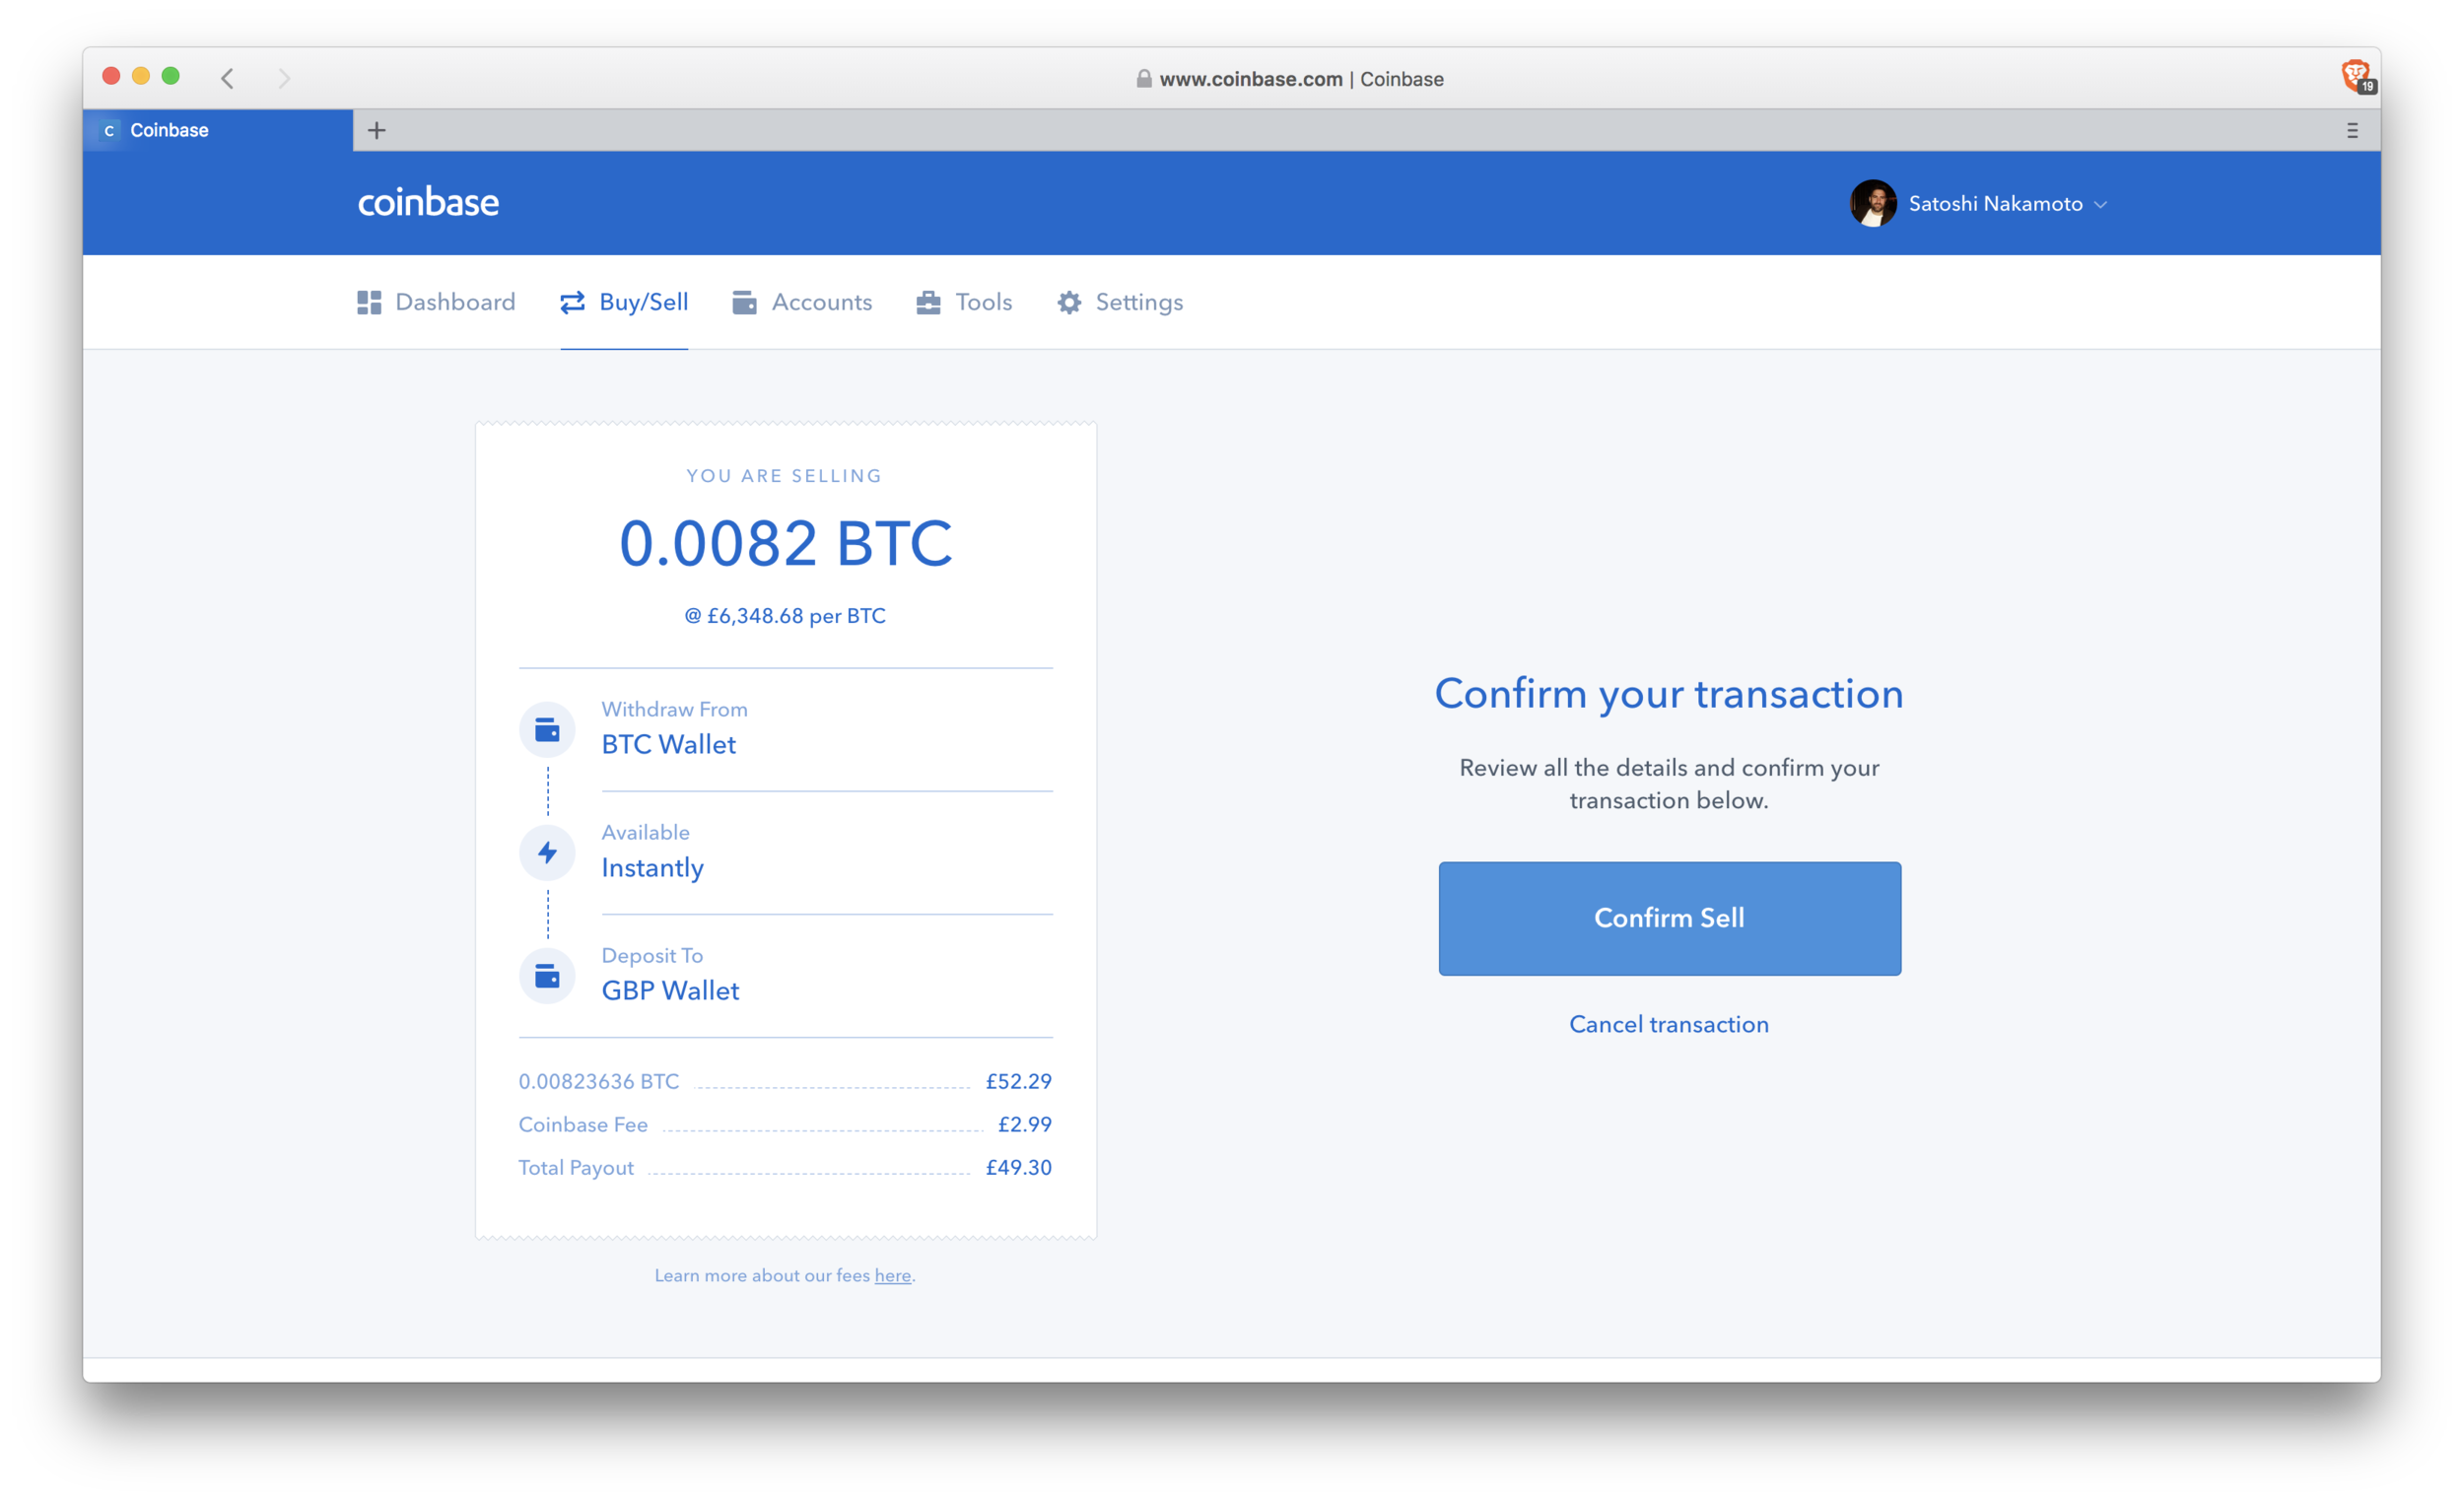 Coinbase: confirm sell